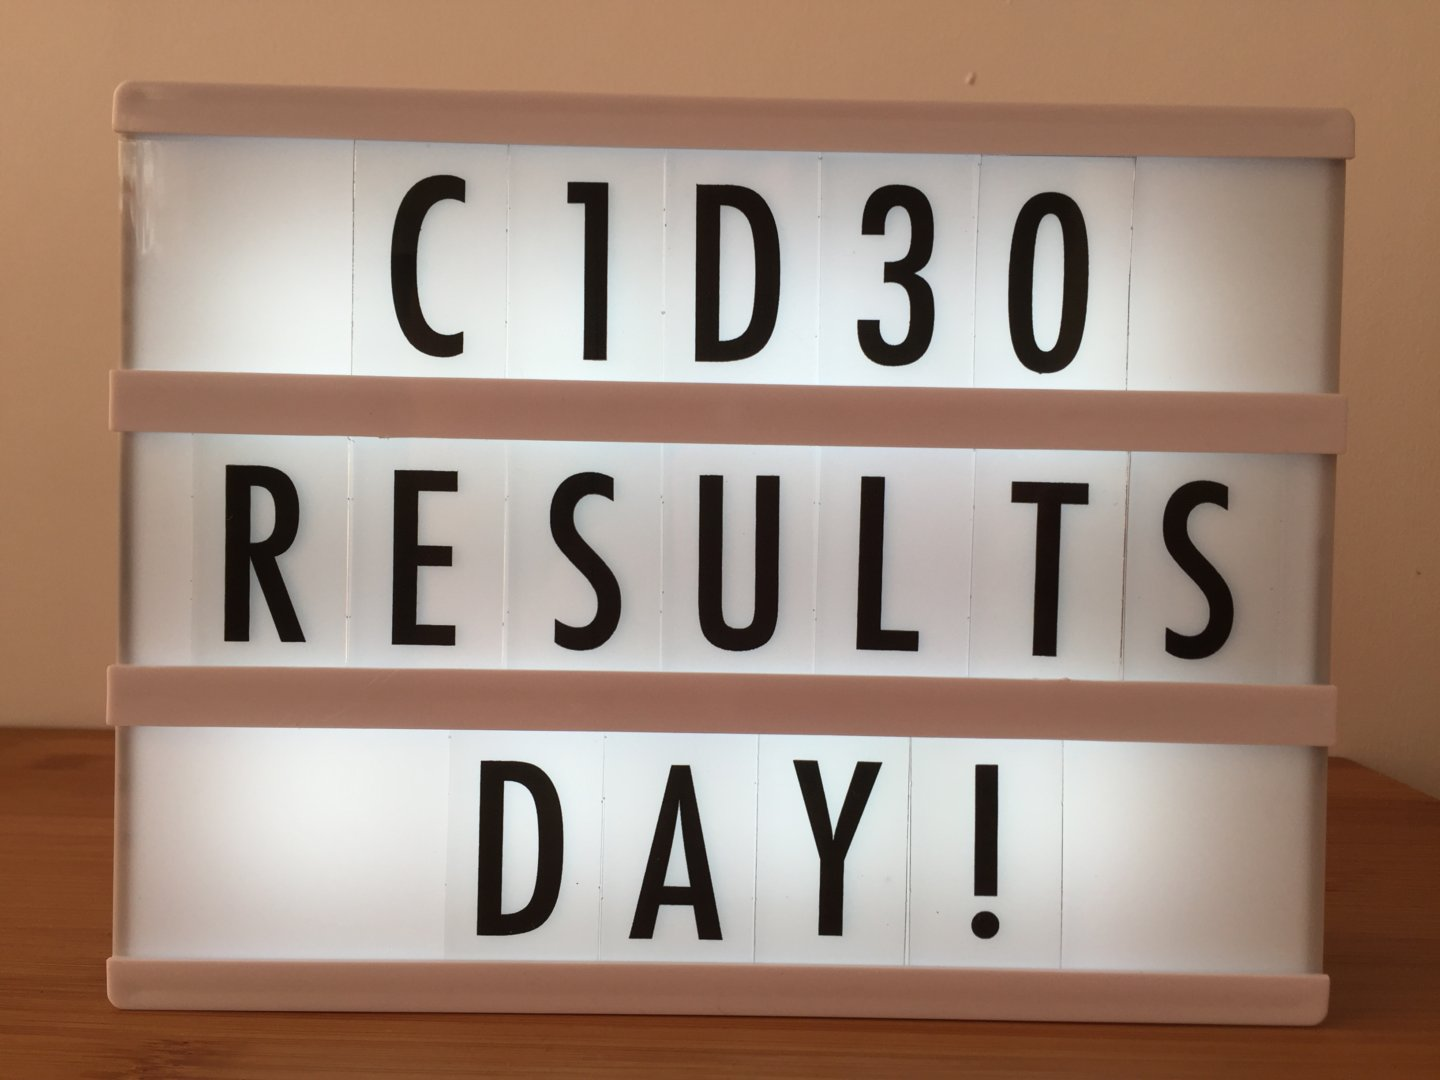 C1D30 – Results submission day!